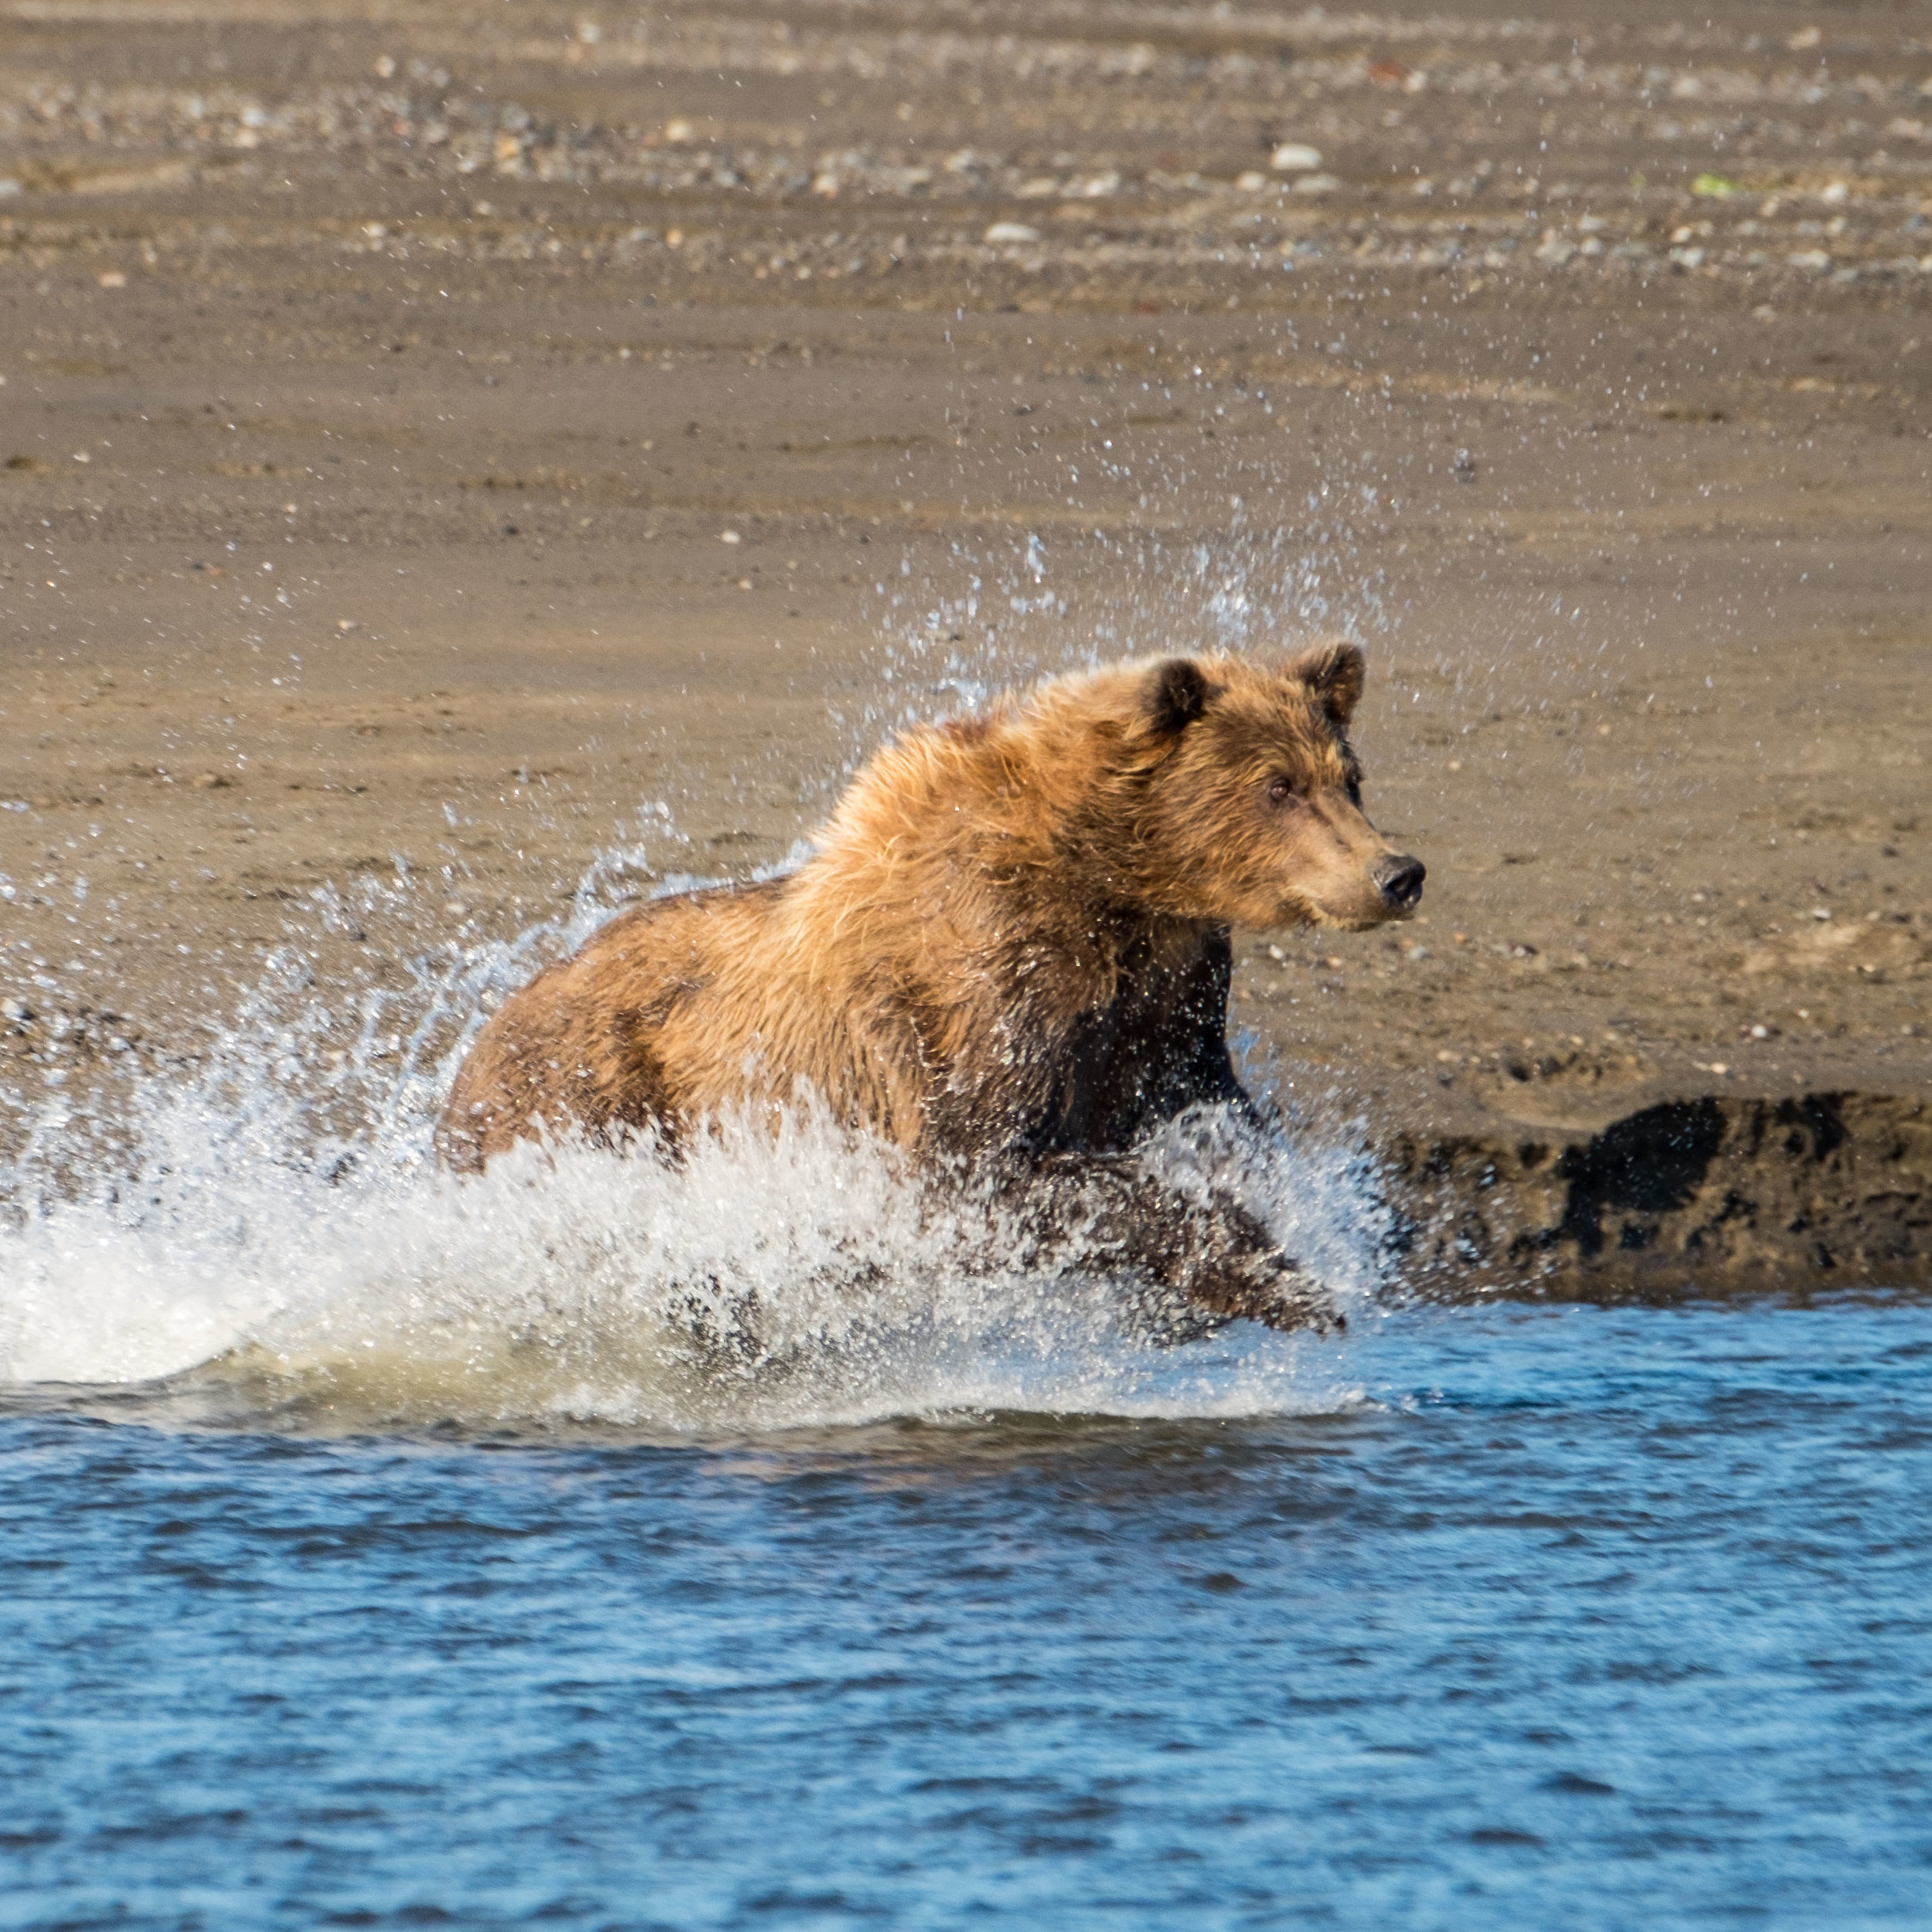 ...she would spot salmon and take off into the water in a flurry of action. it kept us on our toes, as she and her cubs were not far away.